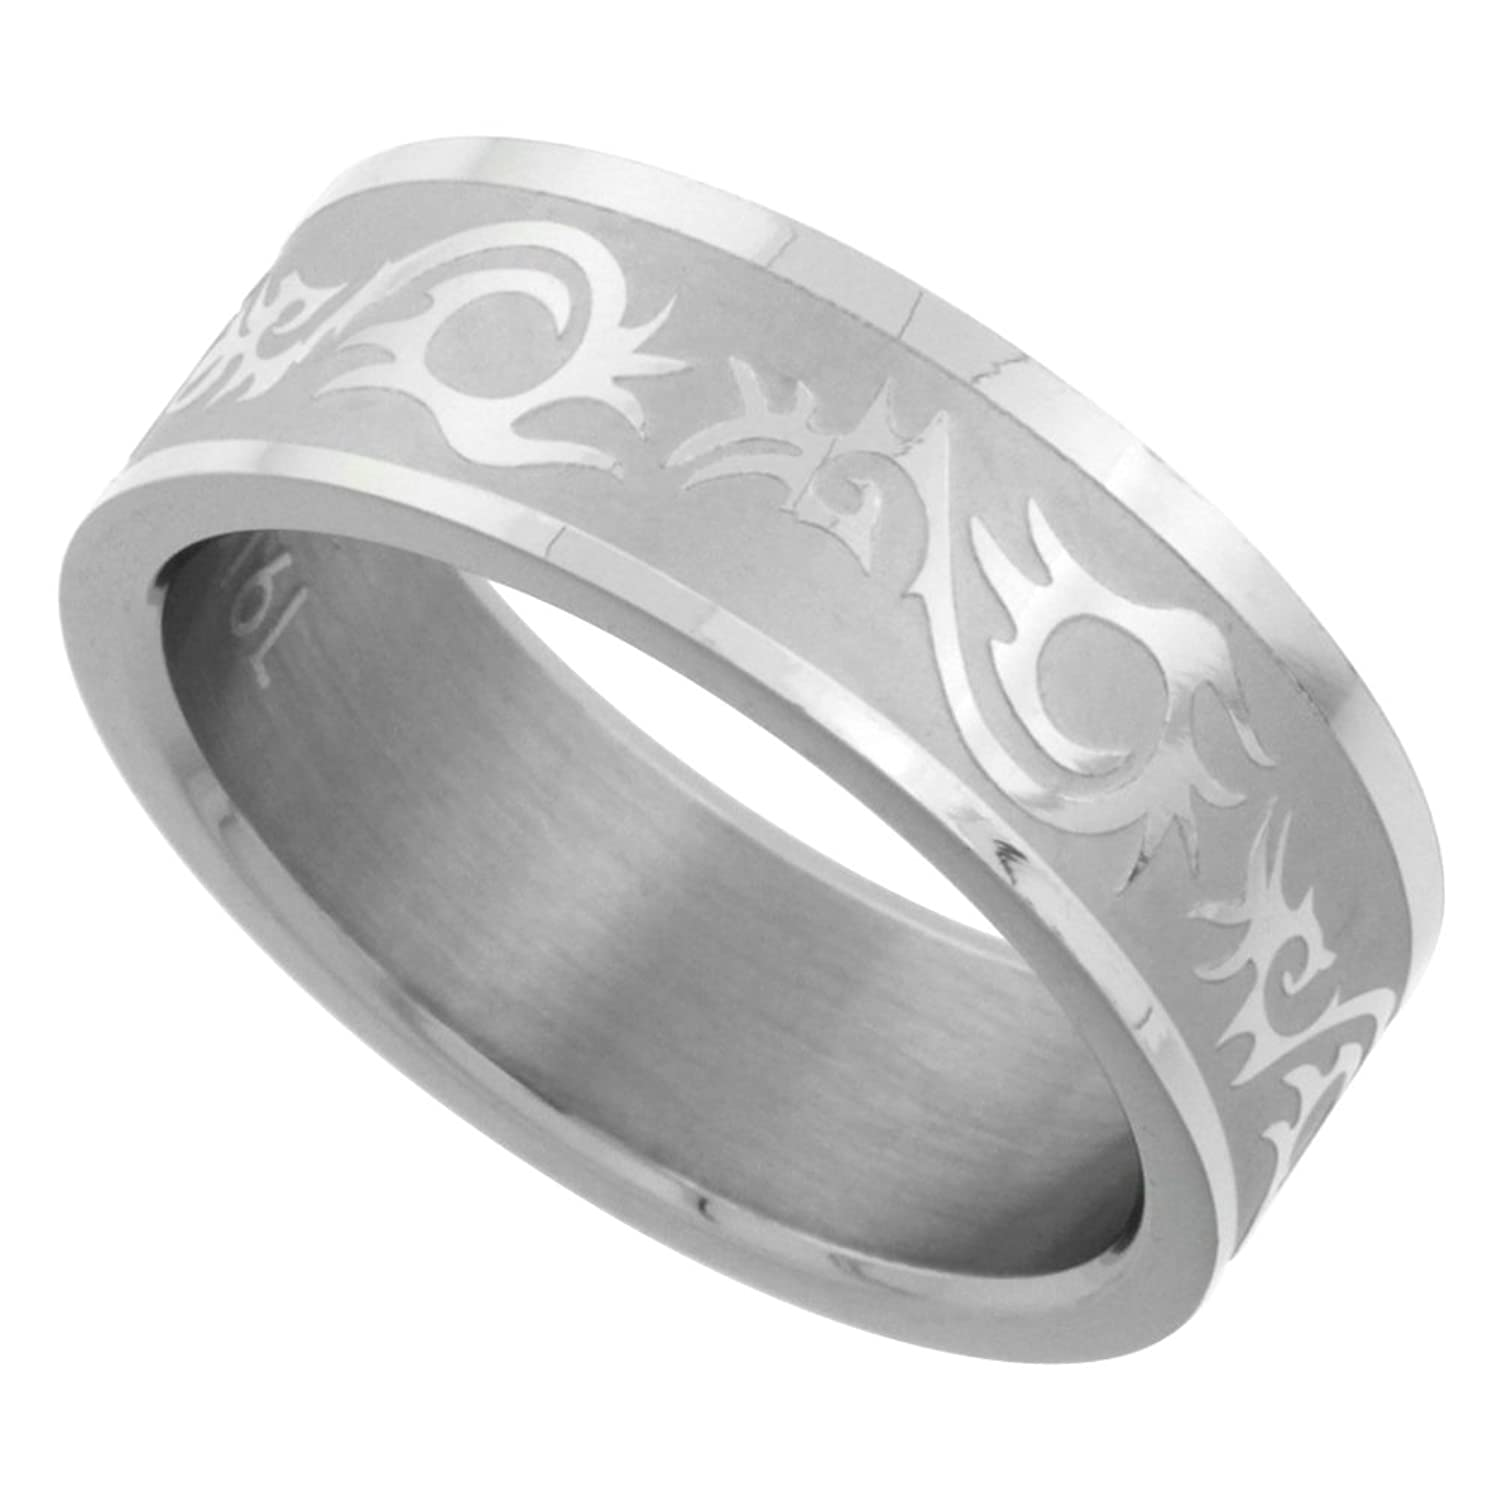 It is just a graphic of Wedding Rings Men Tribal Pattern Stainless Steel Wedding Band & Ring